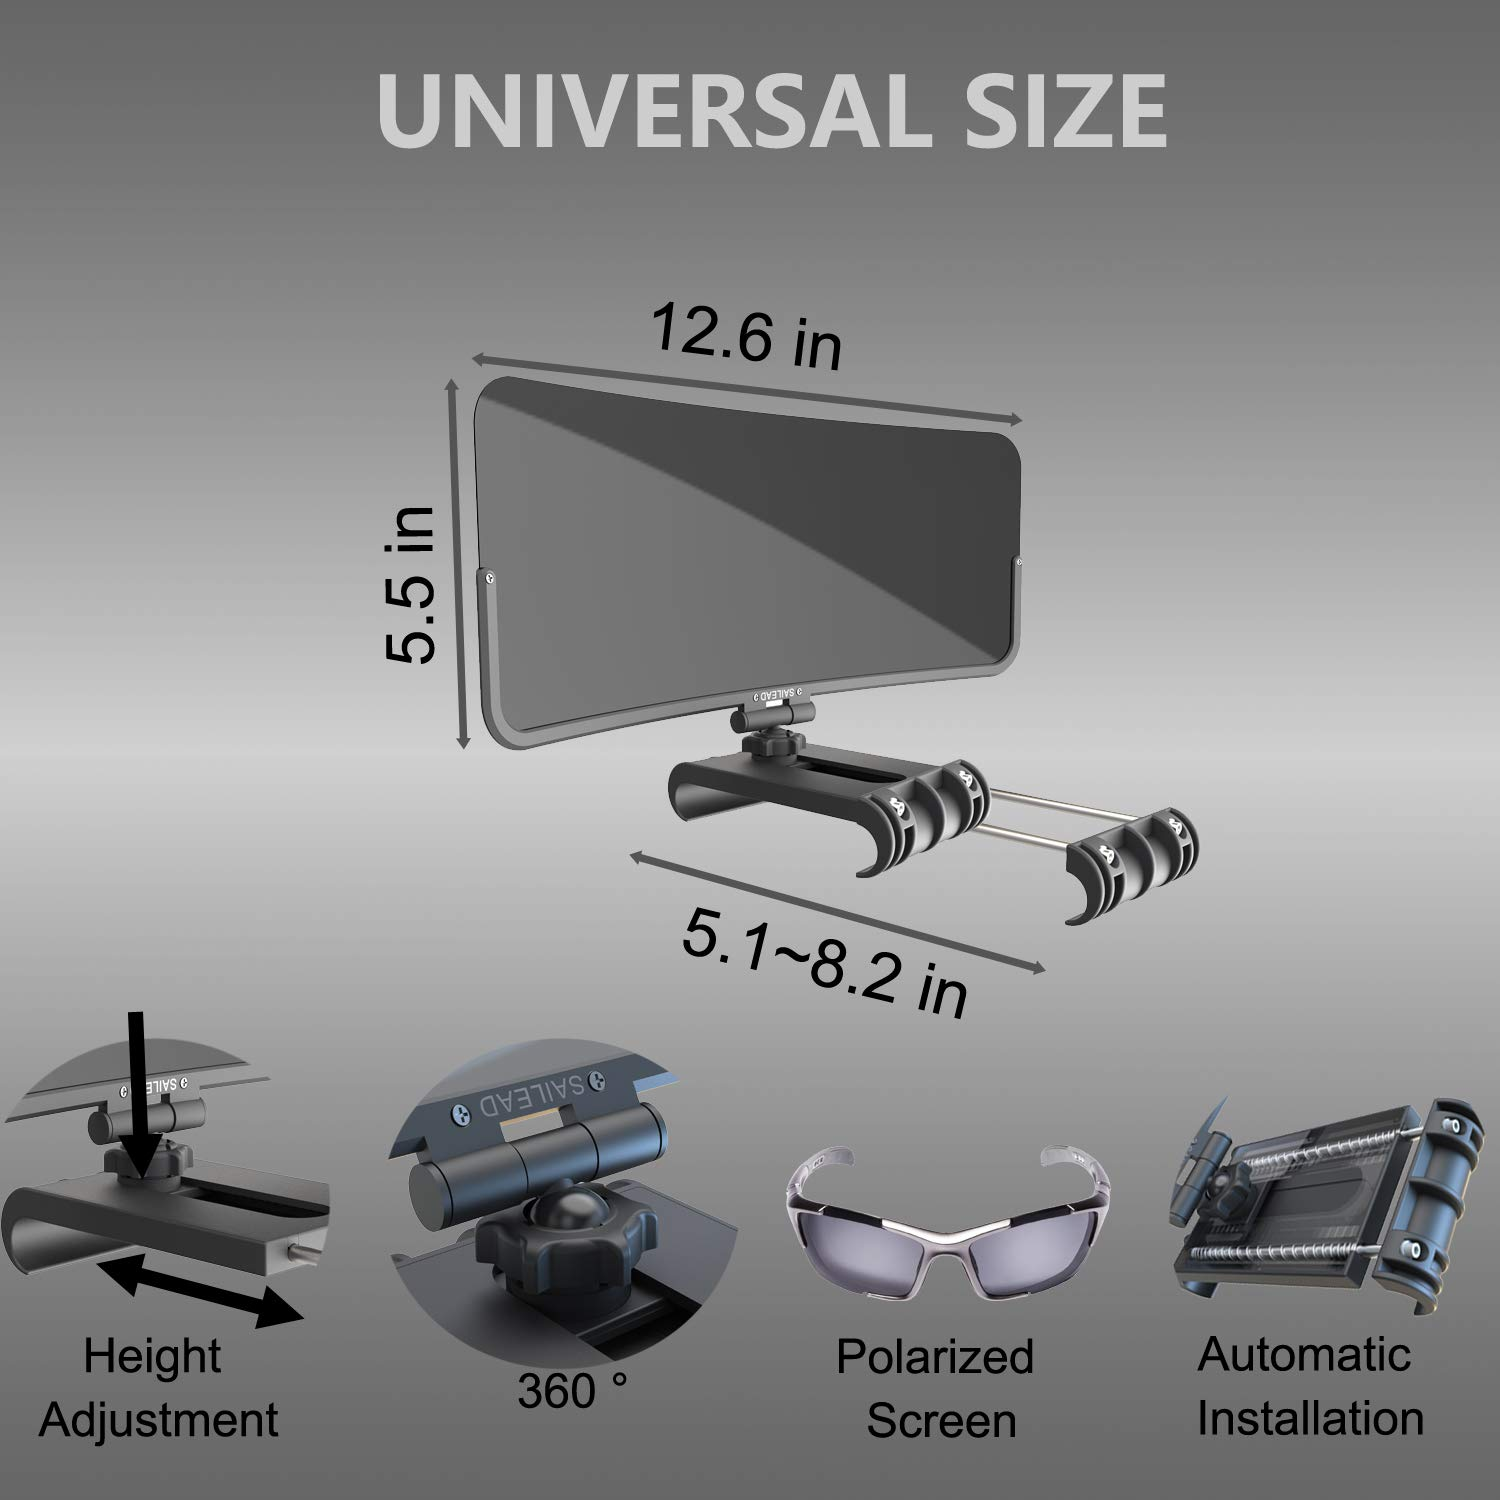 SUVs and RVs SAILEAD Automatic Installation Polarized Sun Visor Extender for Car UV Rays Polycarbonate UV400 Car Sun Visor Protects from Sun Glare Universal Fits Visor Width 5.1 to 8.2 Inches